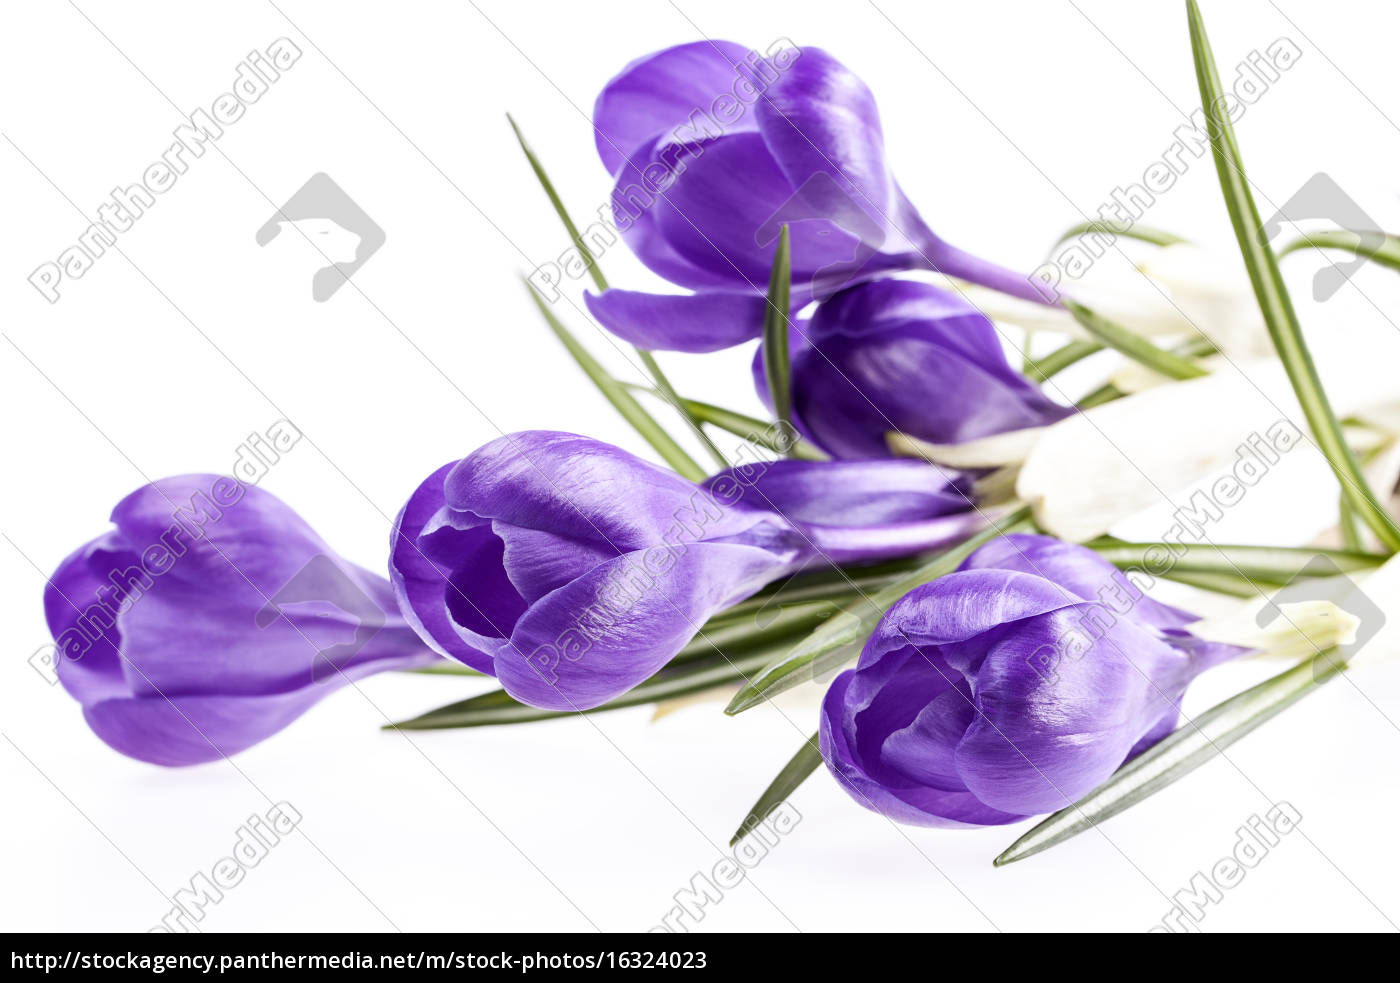 some, spring, flowers, of, violet, crocus - 16324023